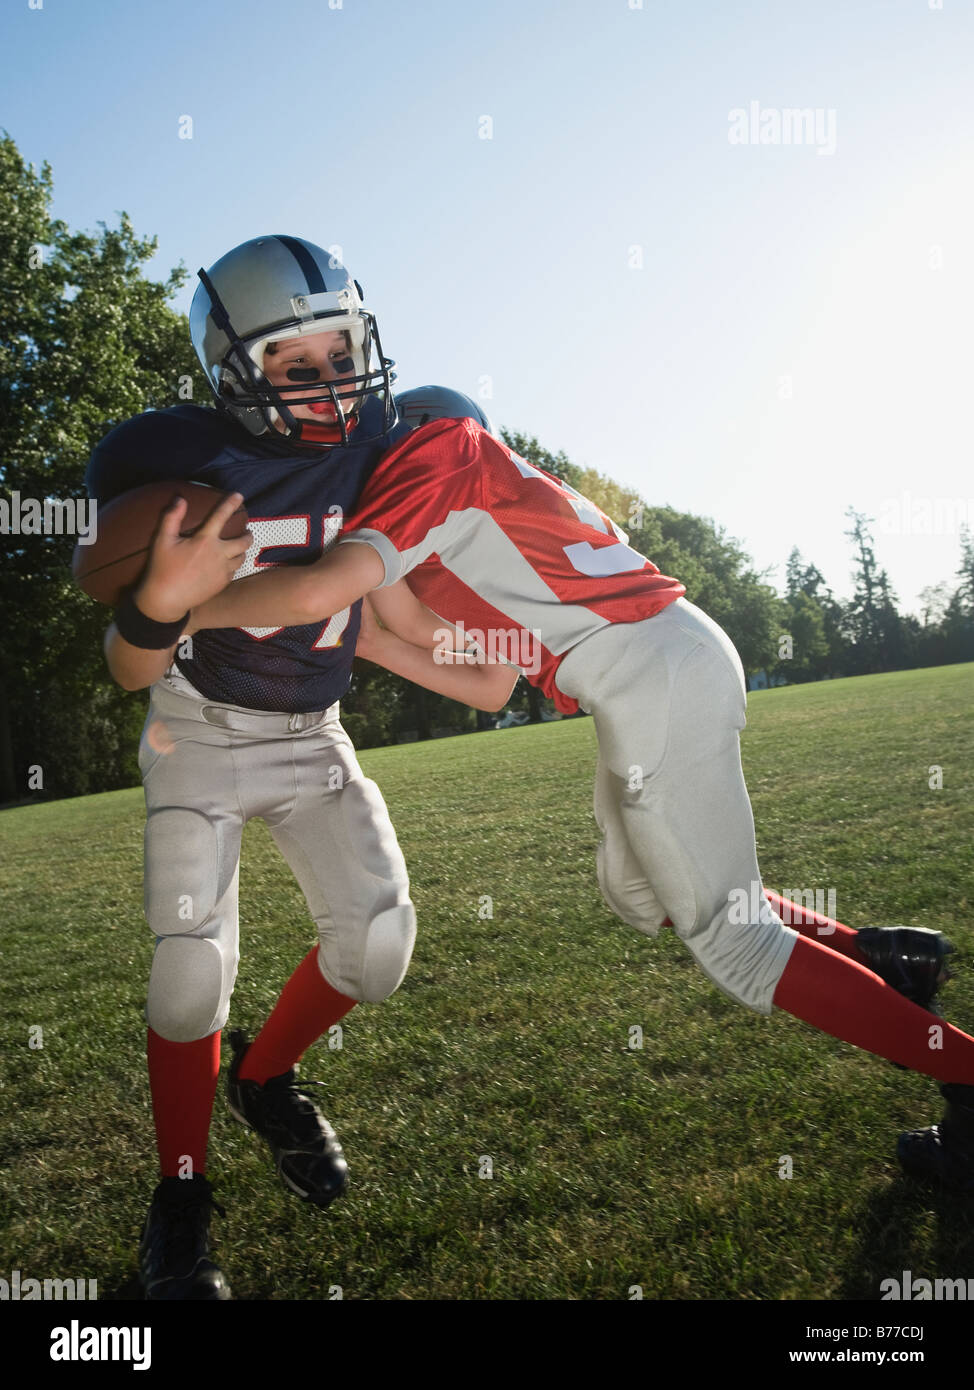 Football player tackling opponent - Stock Image